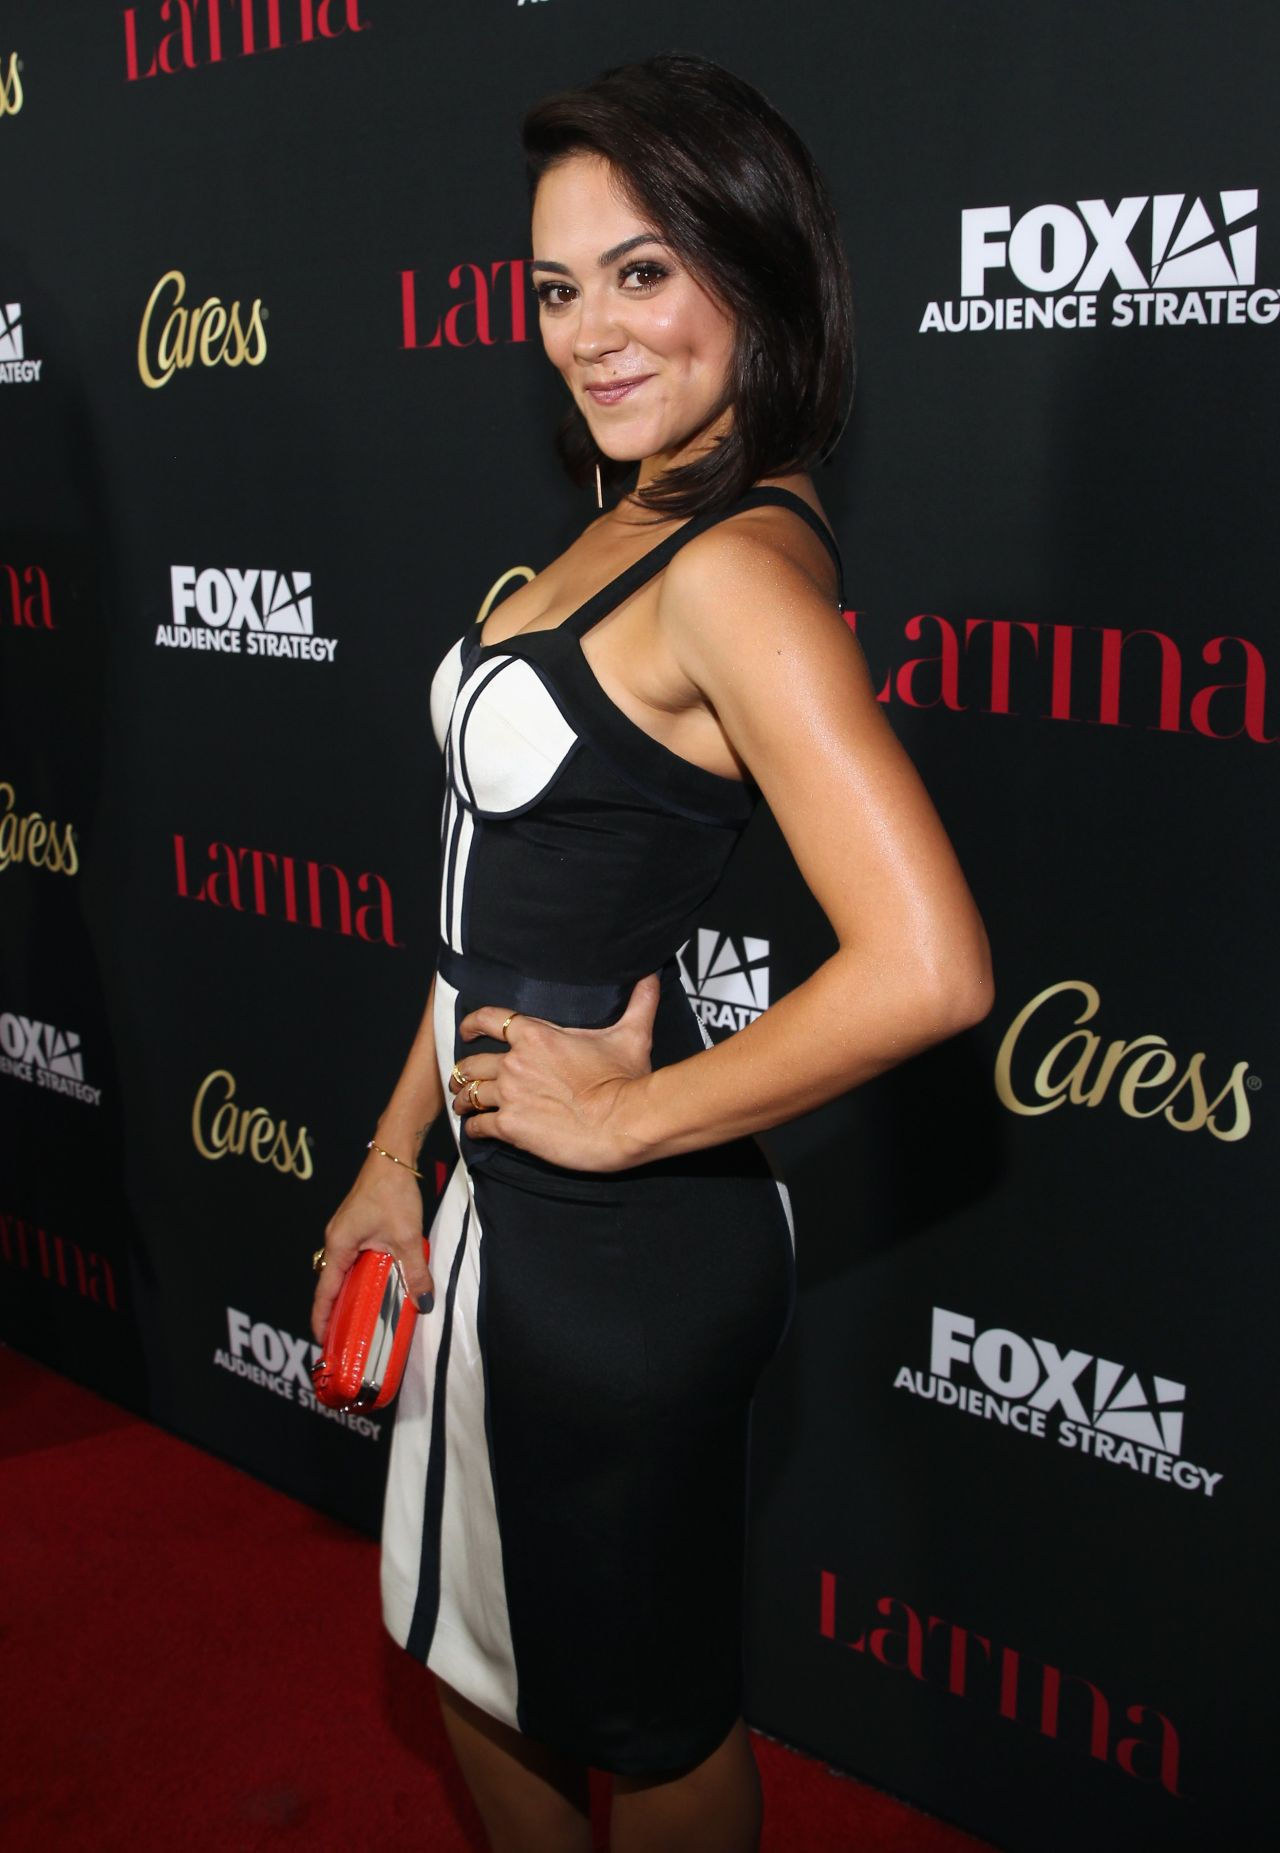 camille guaty bikinicamille guaty instagram, camille guaty imdb, camille guaty how i met your mother, camille guaty net worth, camille guaty nudography, camille guaty vampire diaries, camille guaty bikini, camille guaty movies and tv shows, camille guaty scorpion, camille guaty wiki, camille guaty hot scene